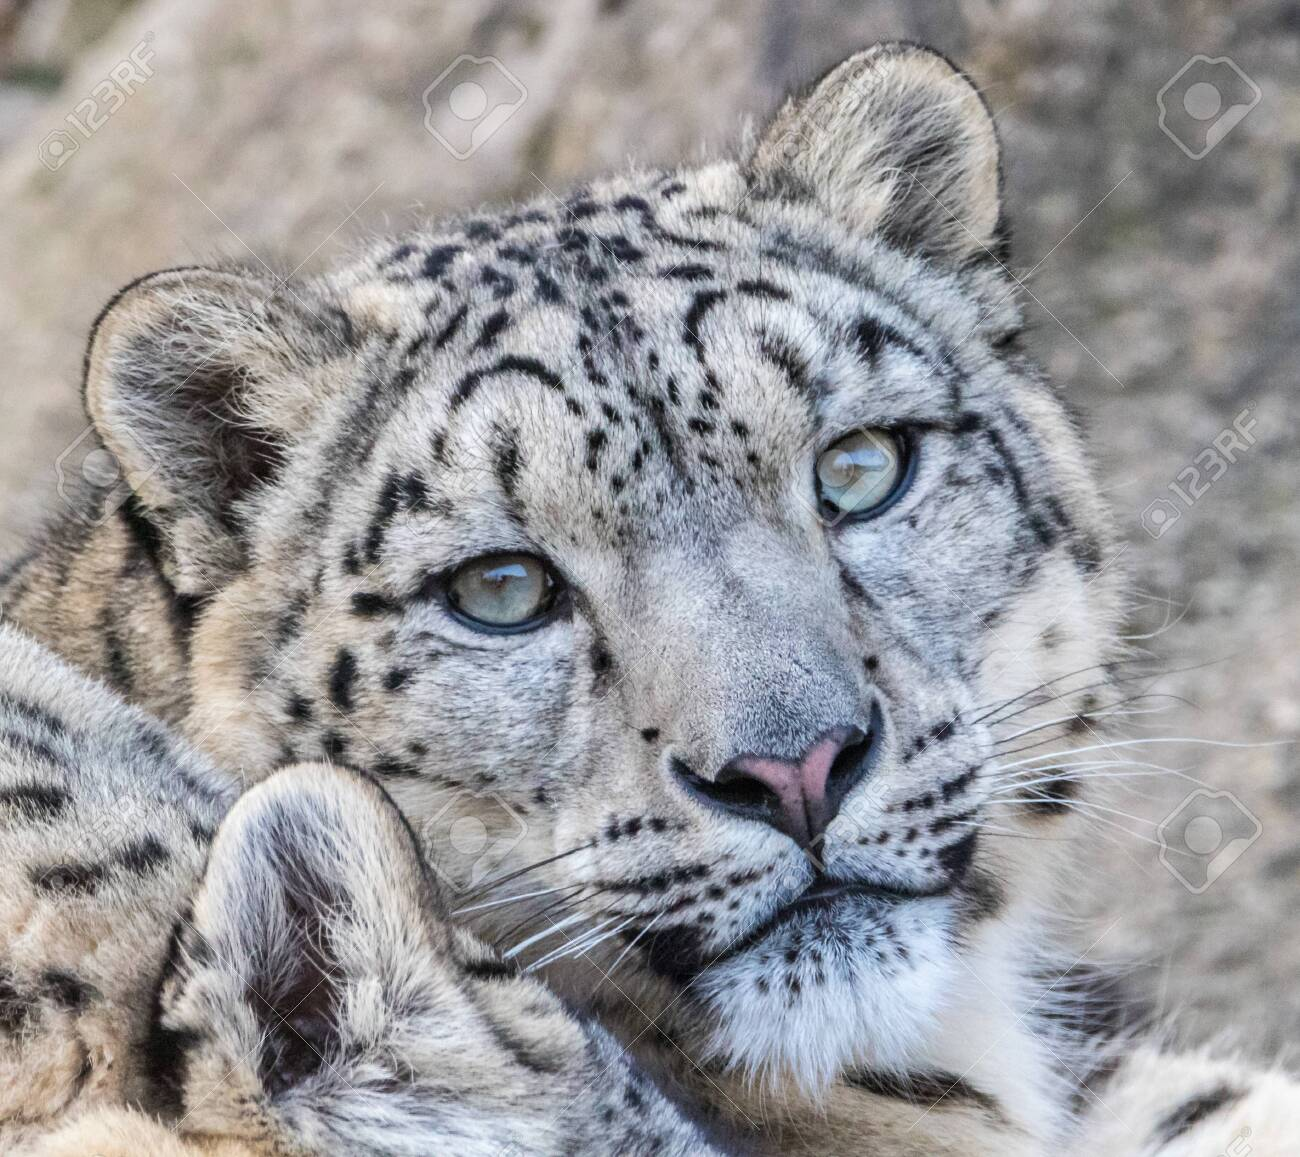 Young and well camouflaged Himalayan Snow Leopard waiting for its prey - 134623323